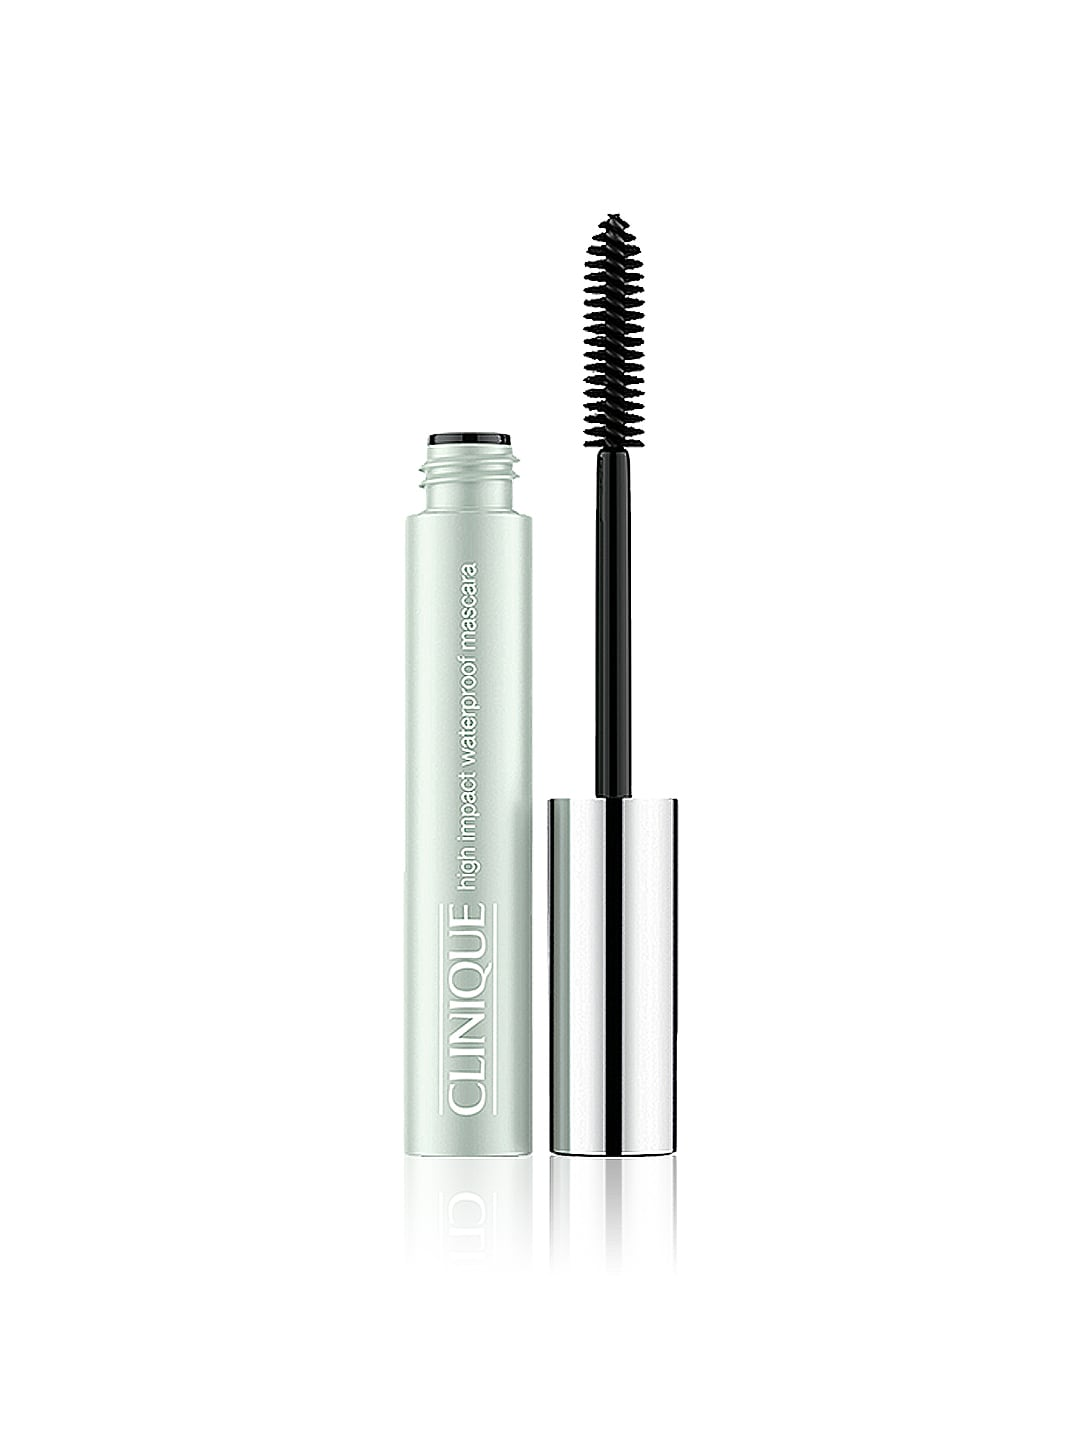 Clinique Black High Impact Waterproof Mascara image